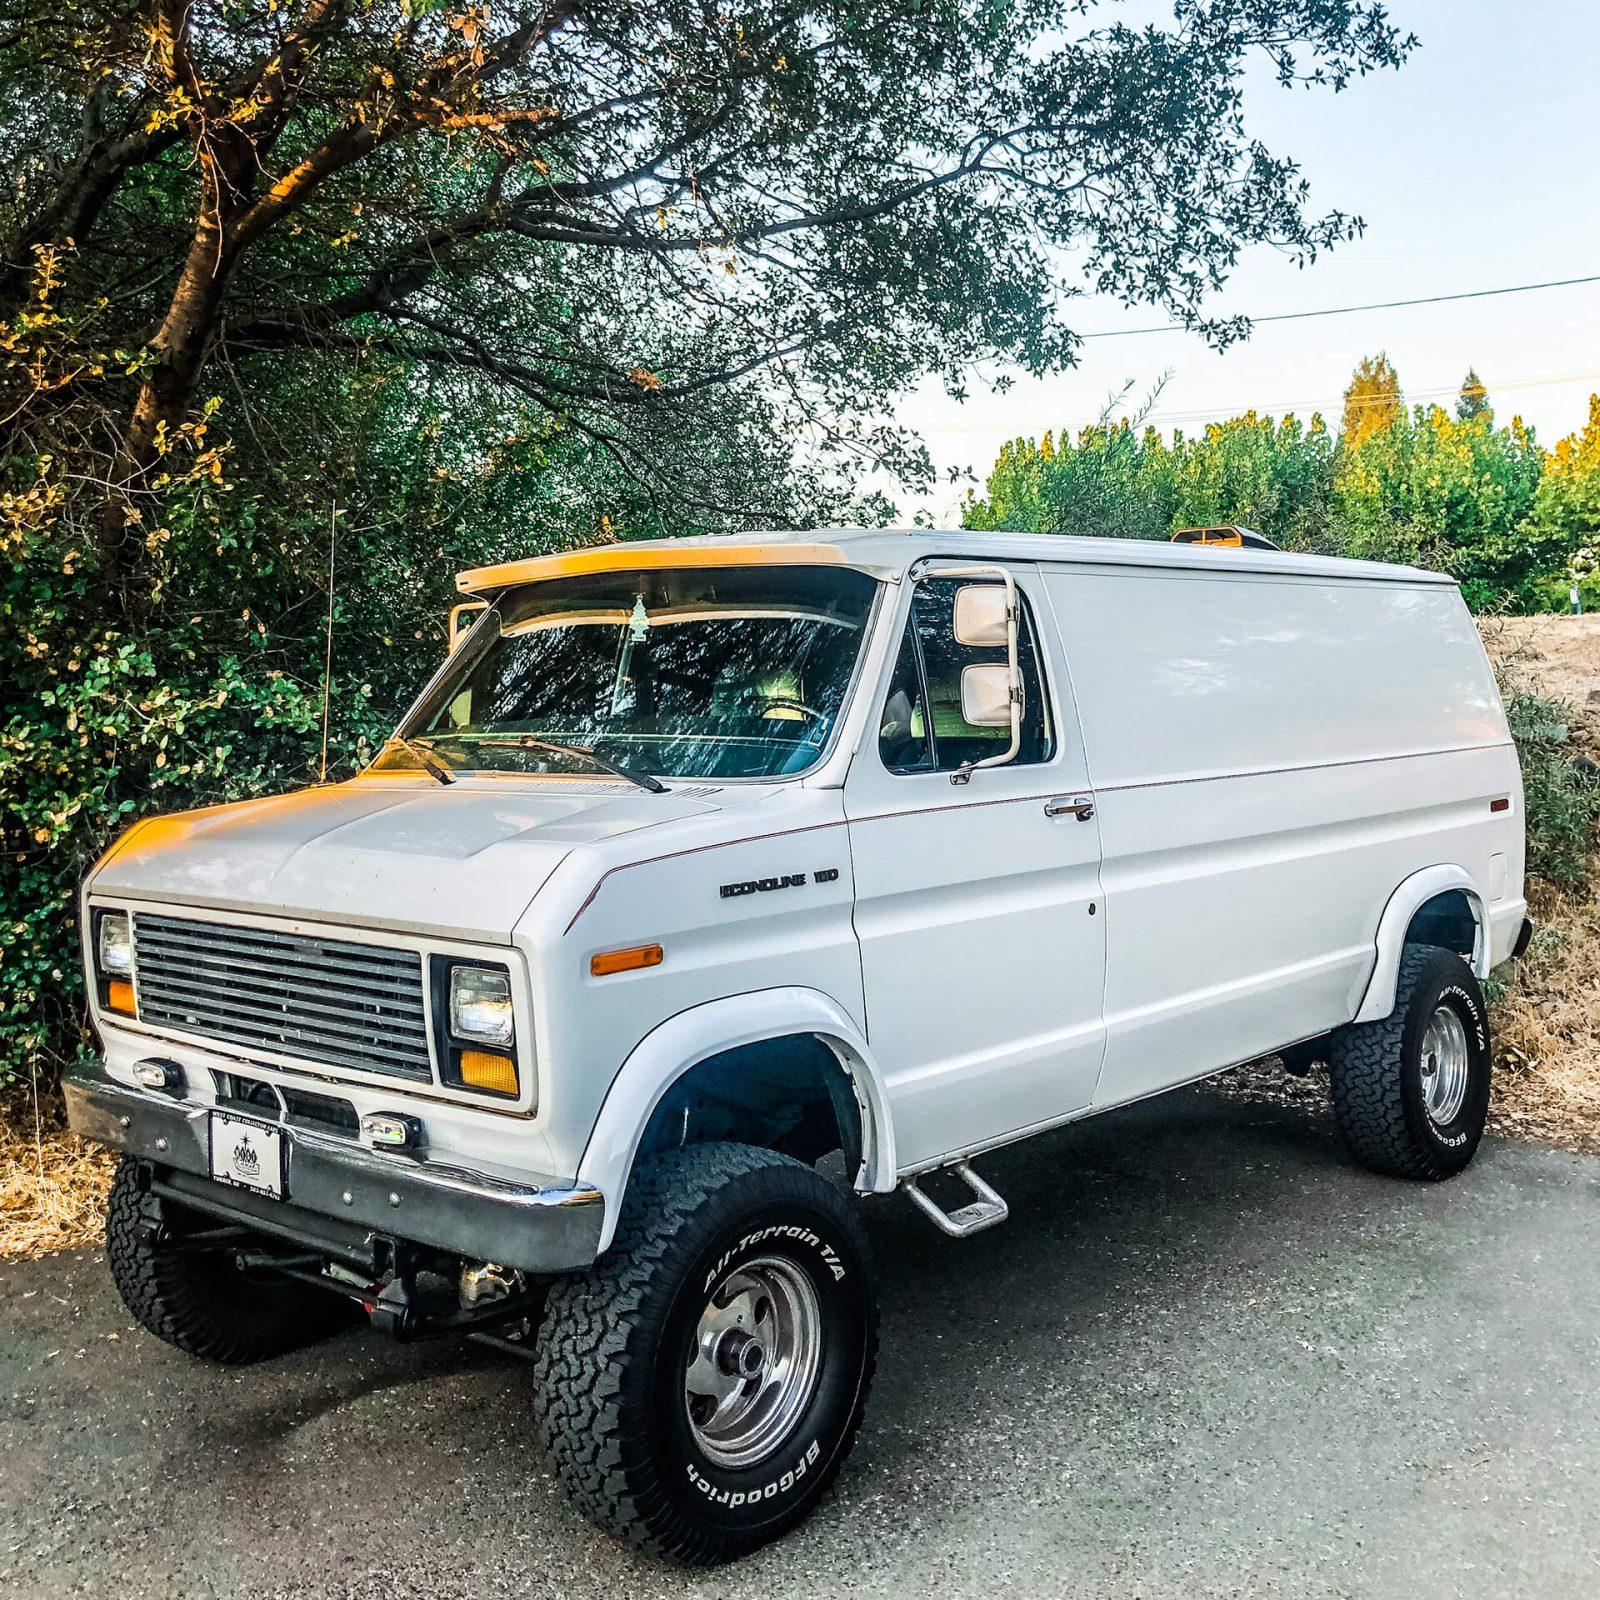 Lifted 1990 Ford E150 Van – Classic Look with a Modern Twist